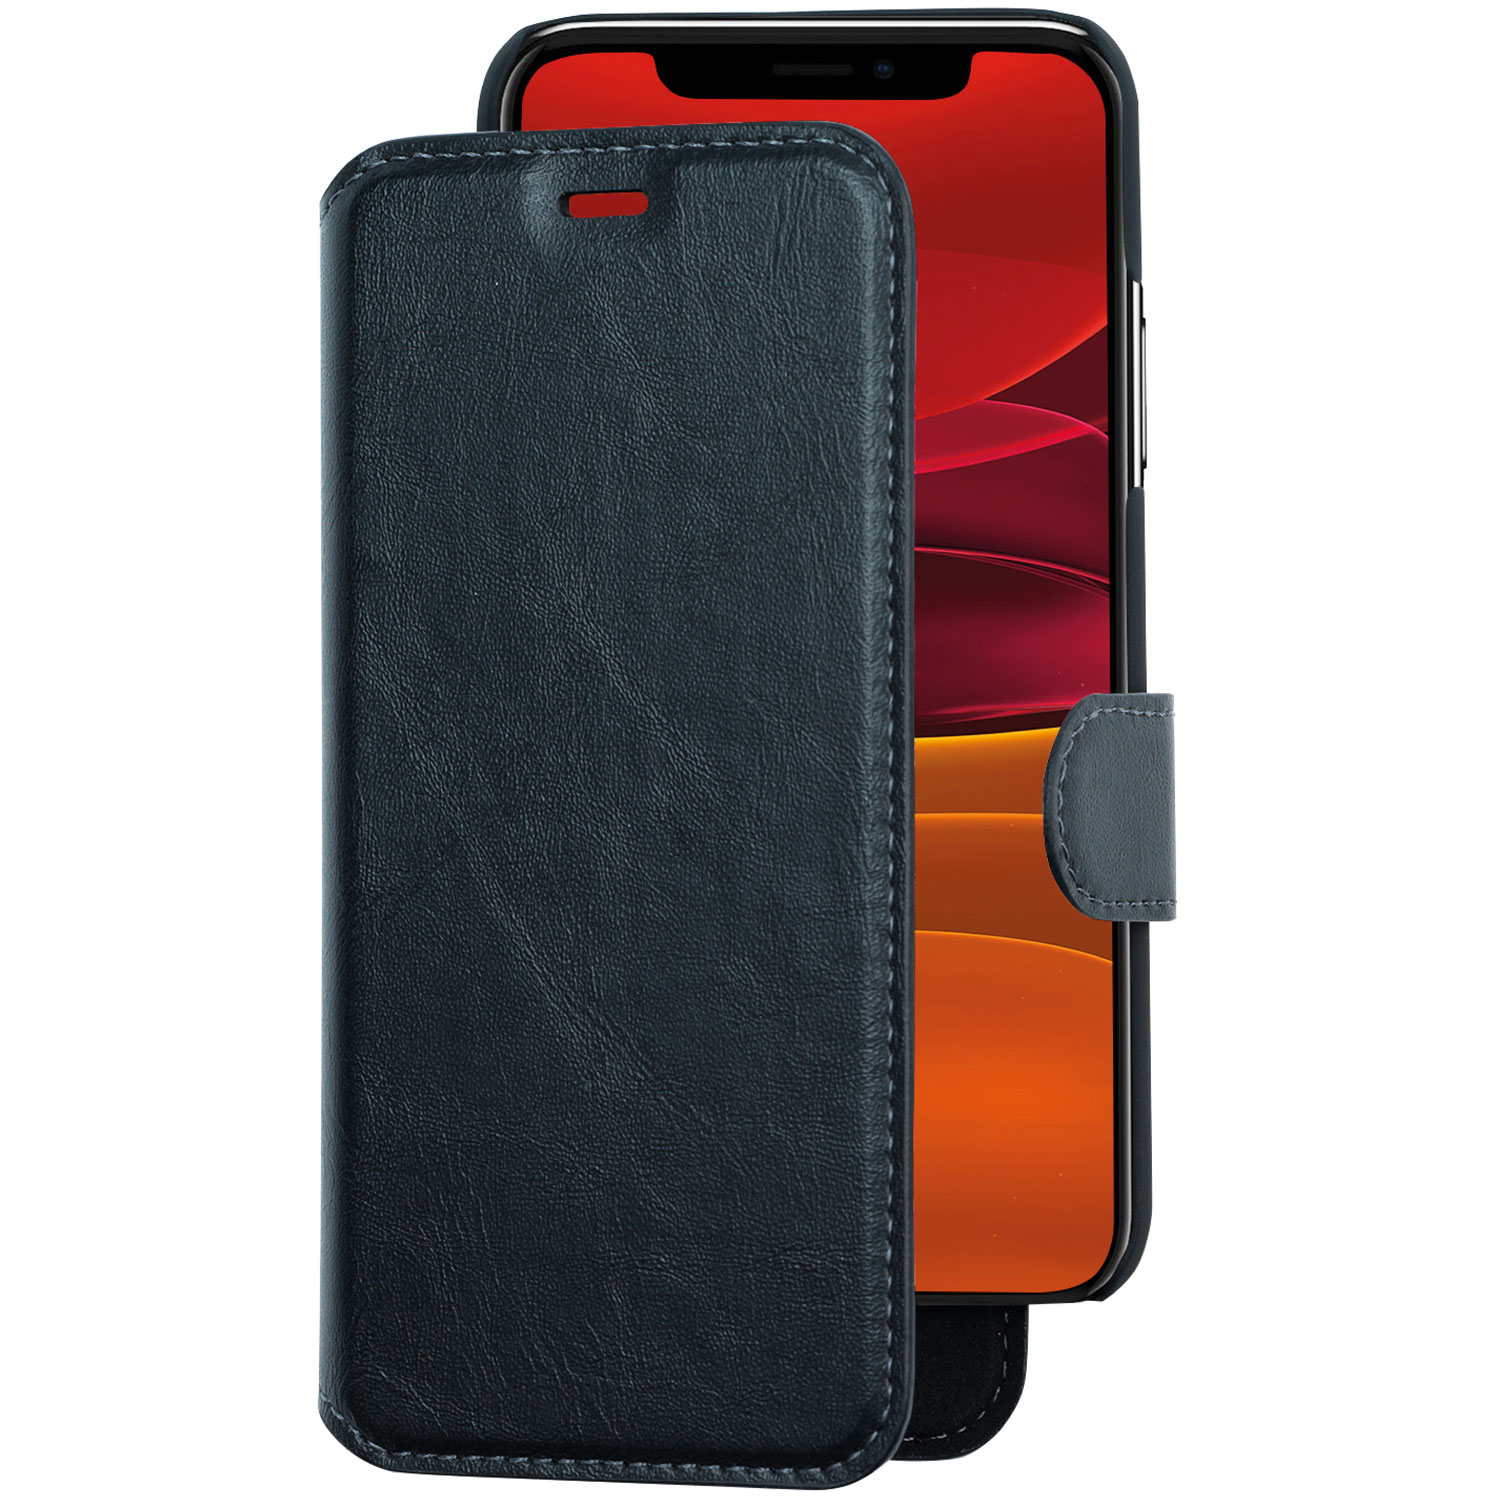 2-in-1 Slim Wallet Case iPhone 12 Pro Max